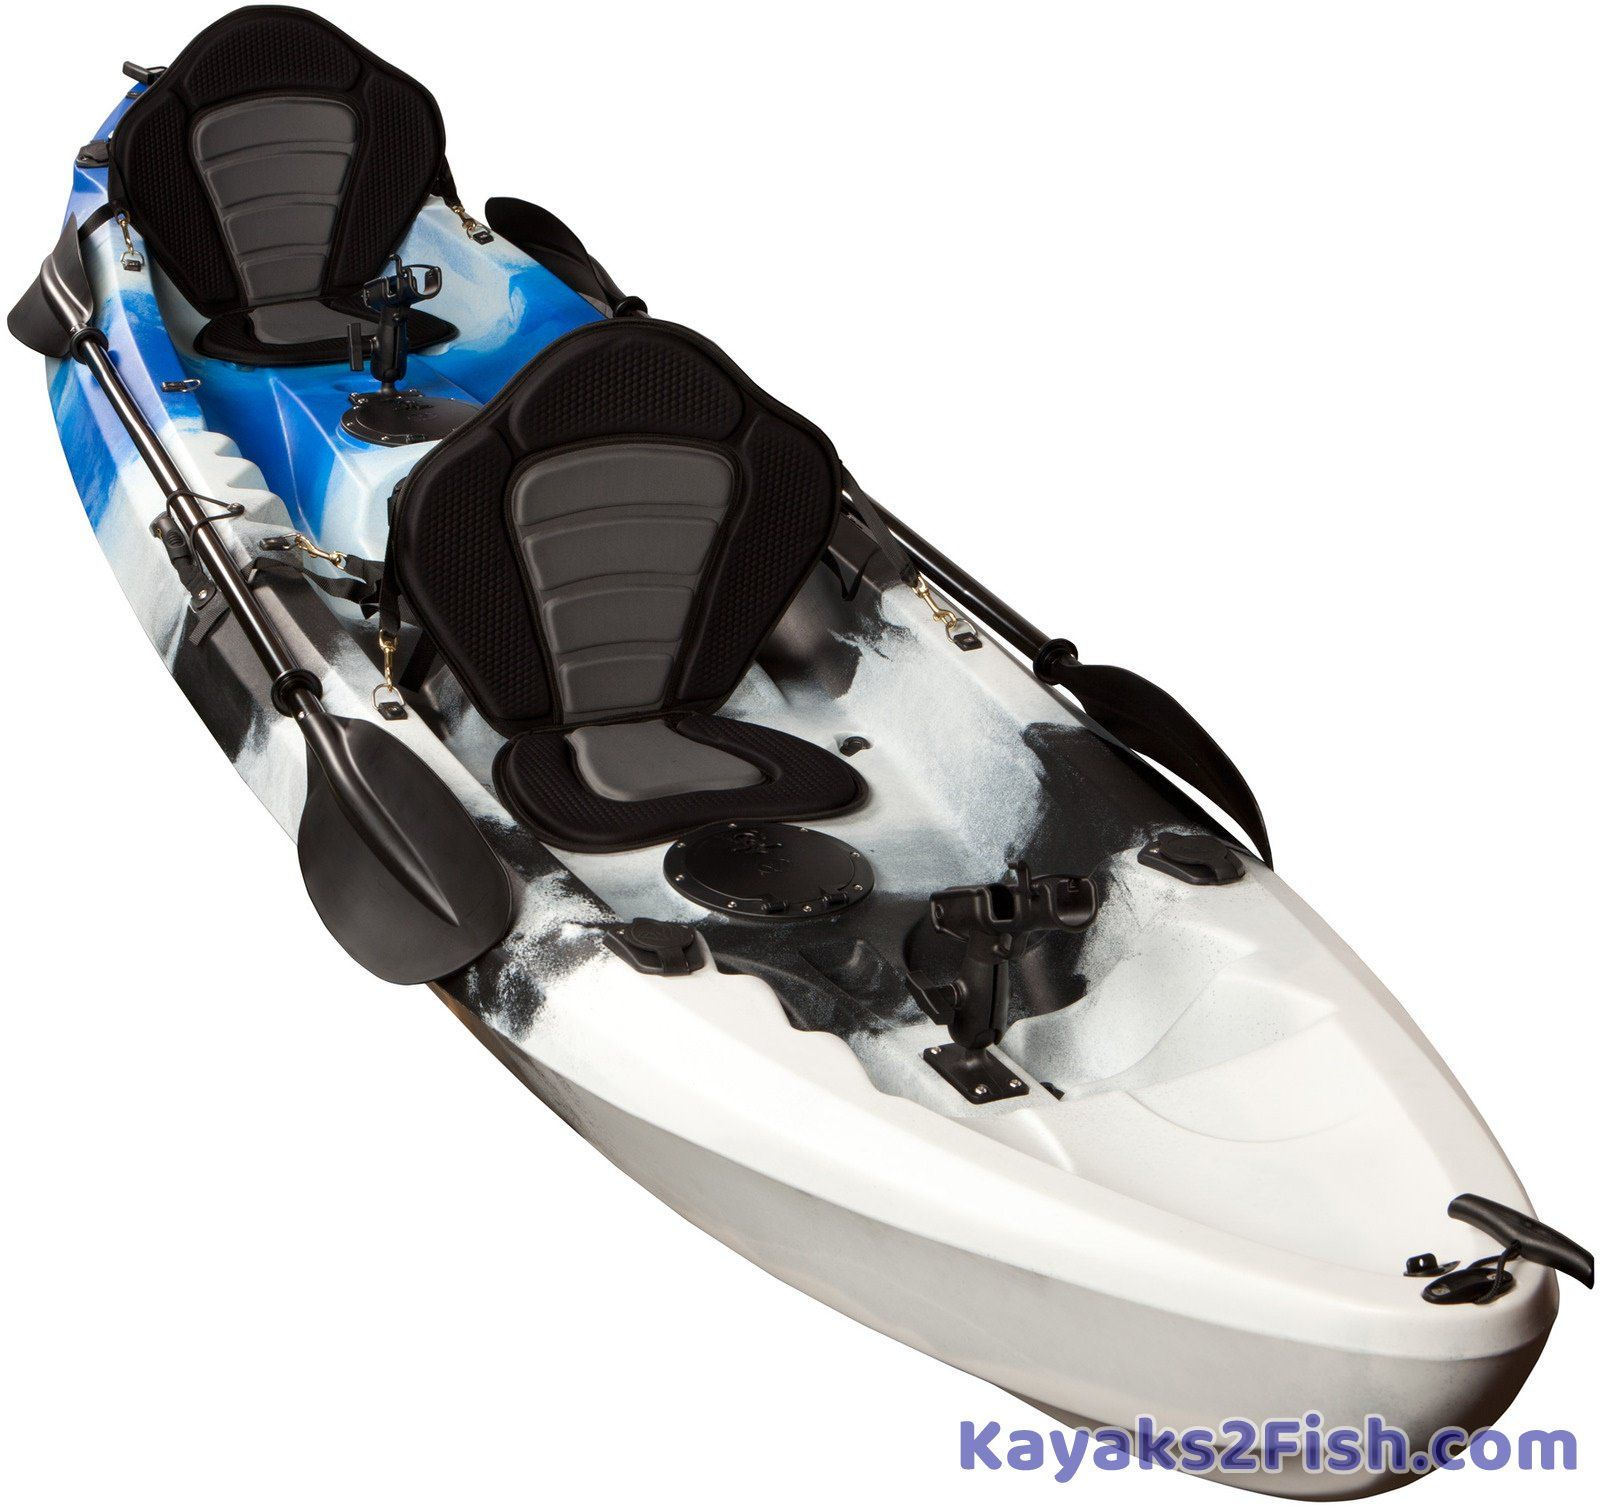 Tandem Kayak 2 Person Kayak Double Kayak For Sale Double Kayak 2